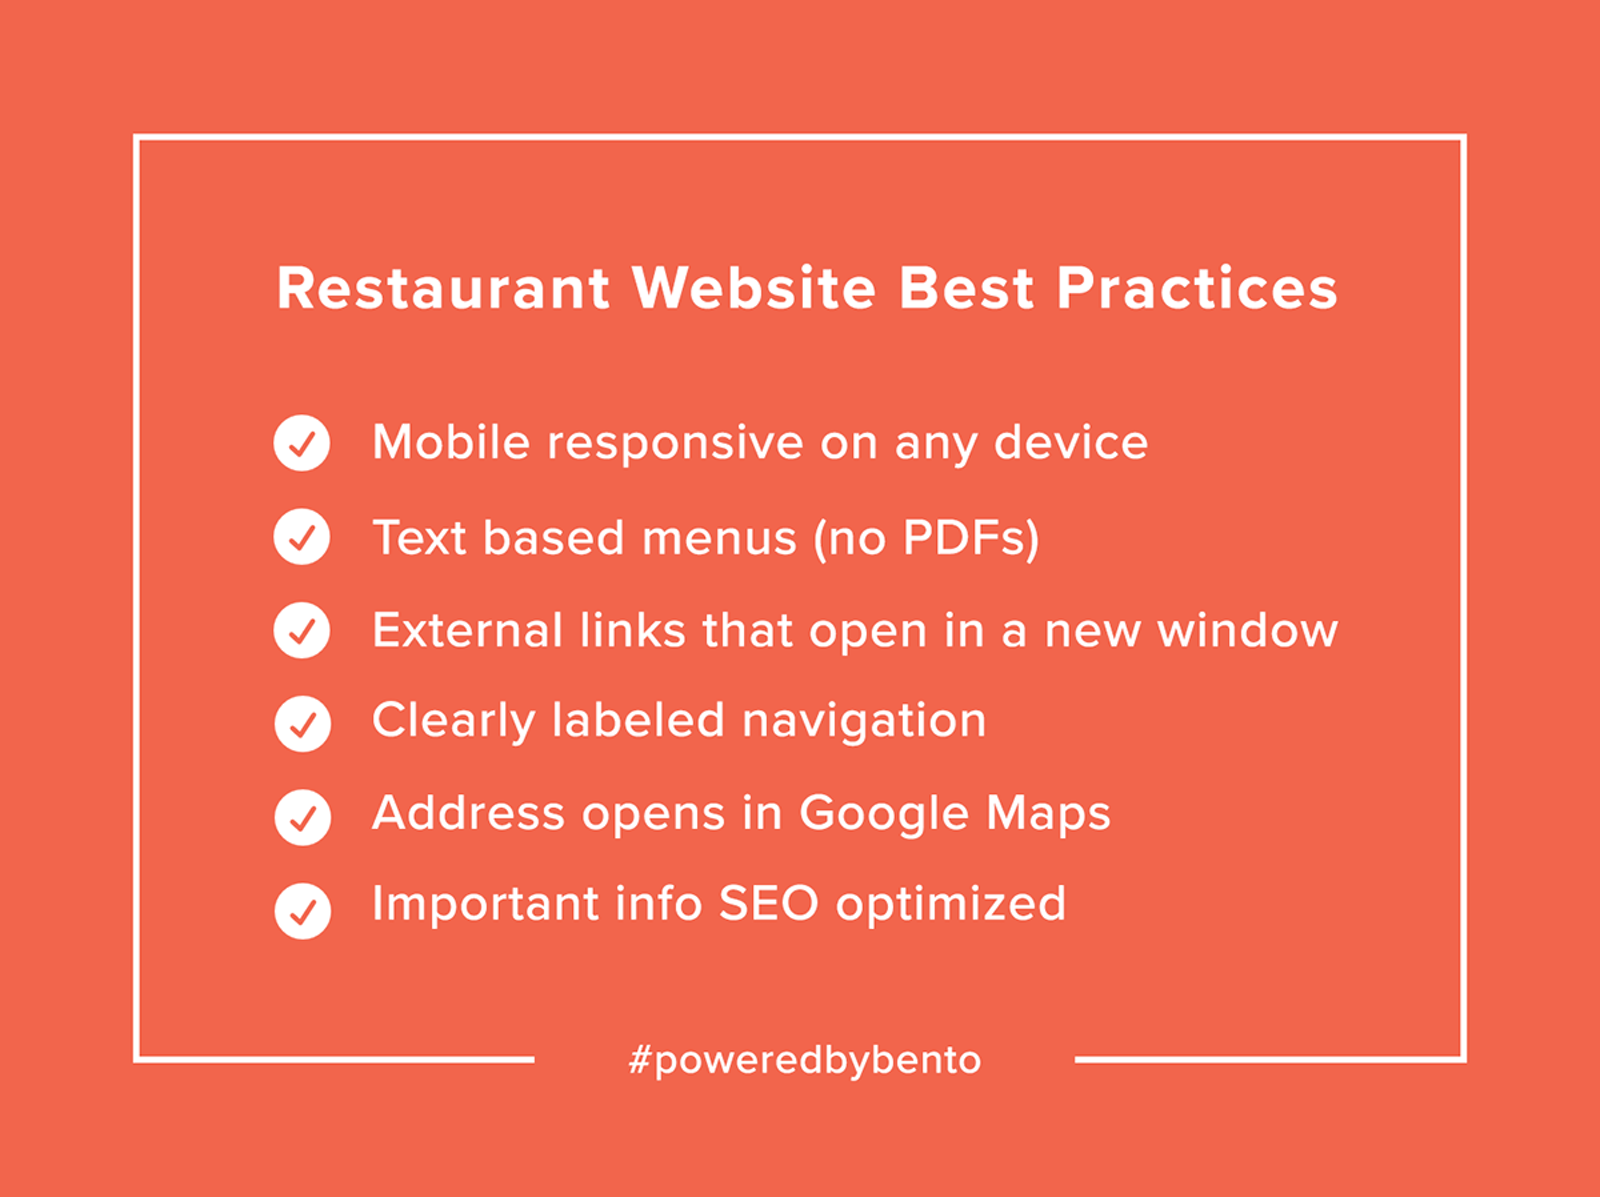 Restaurant Website Checklist